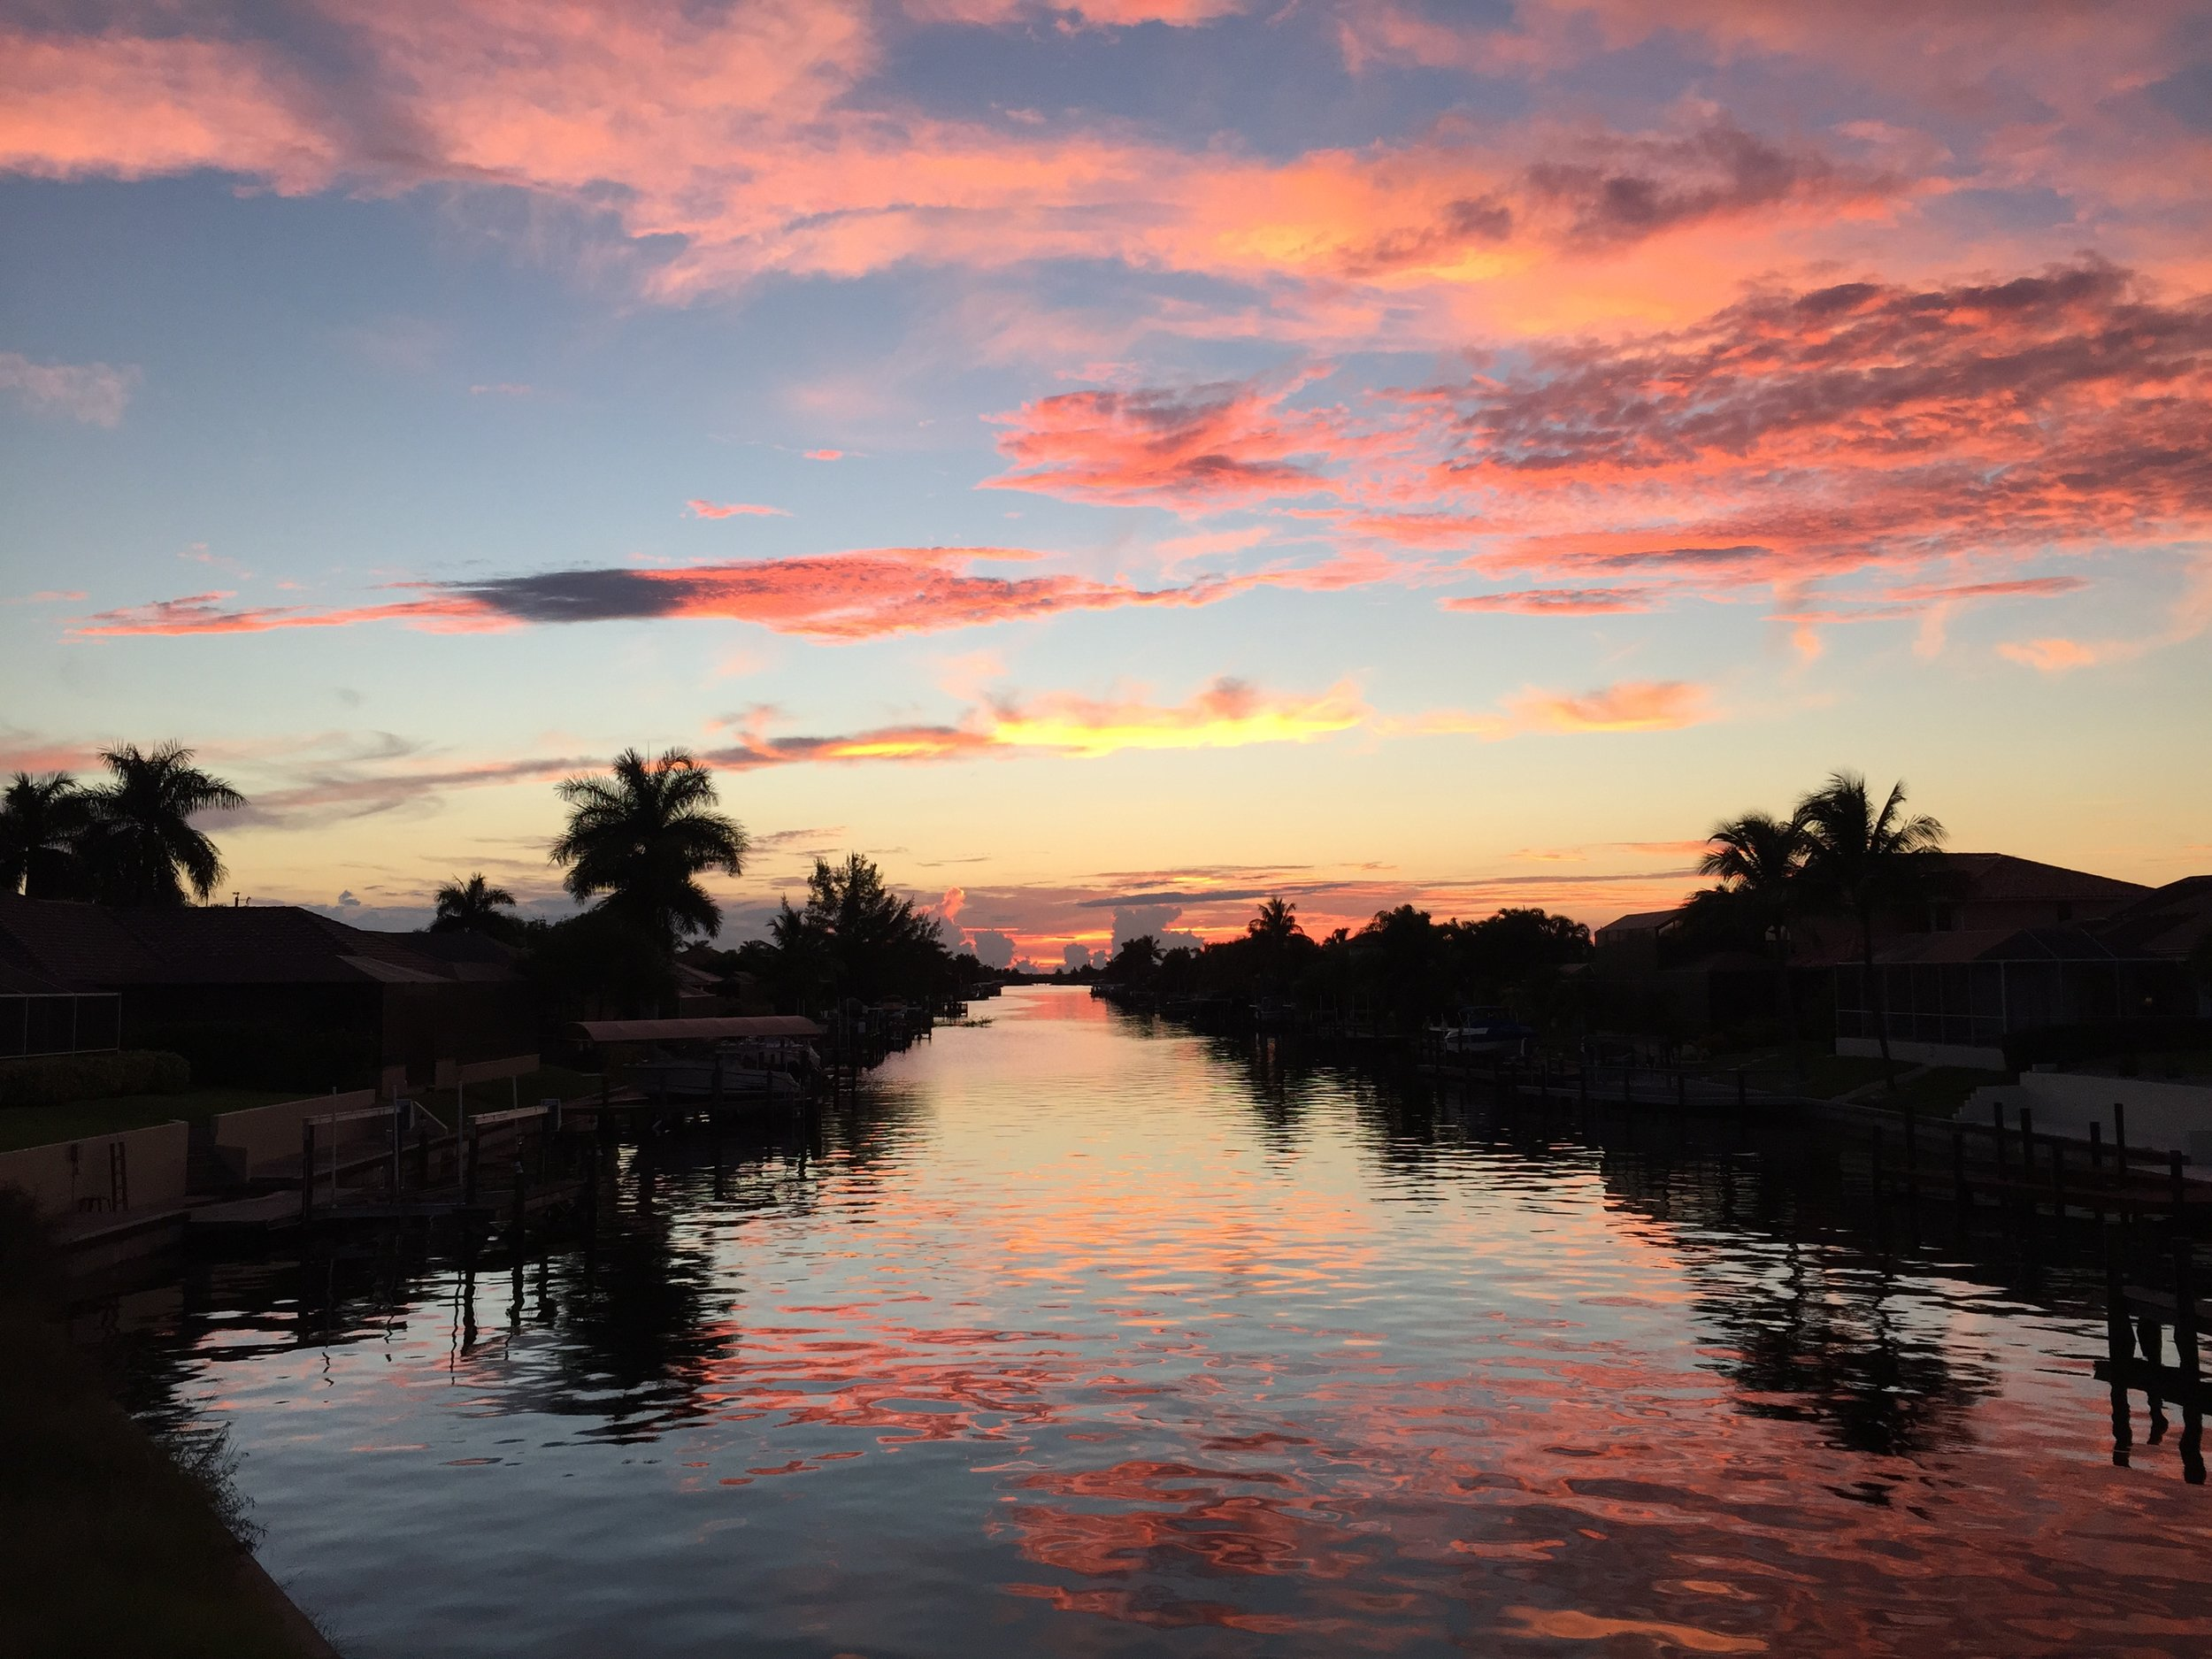 sunset cape coral florida new year's 2016